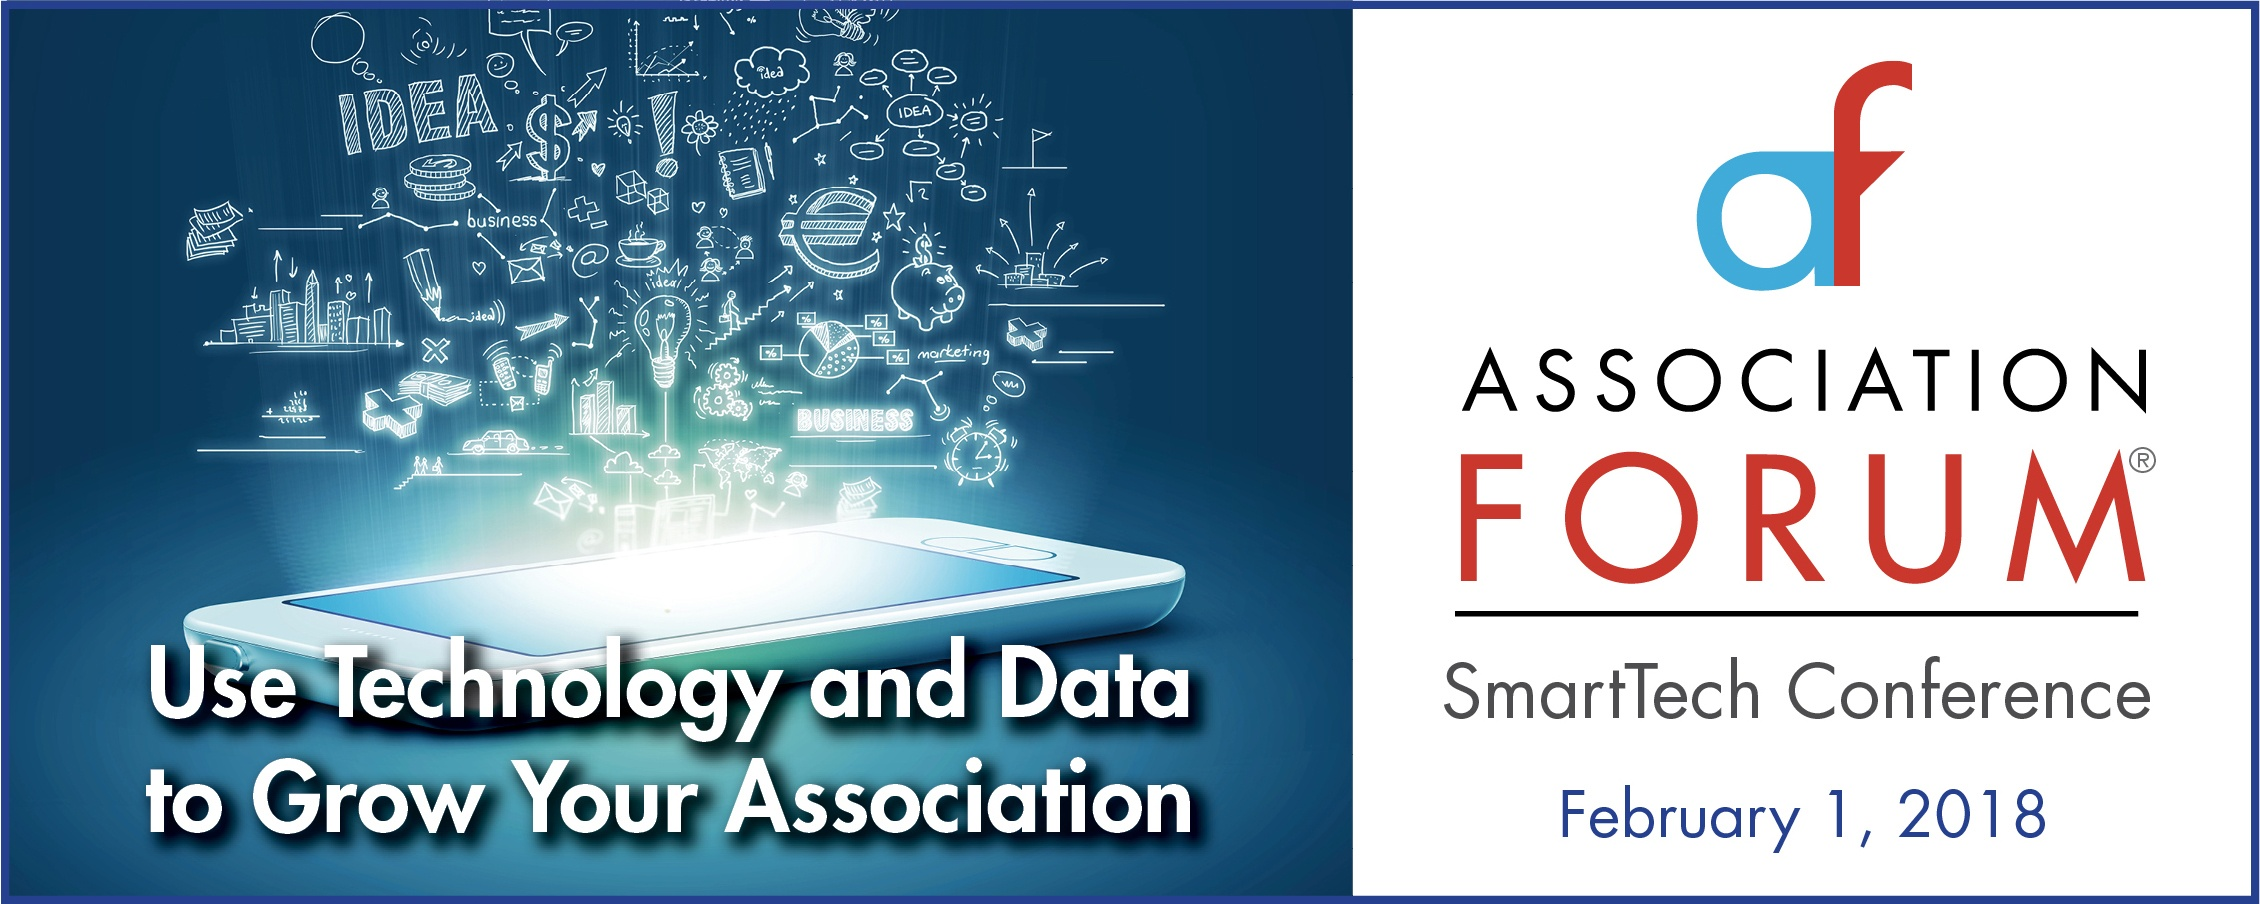 Use Technology and Data to Grow Your Association—Attend the SmartTech Conference